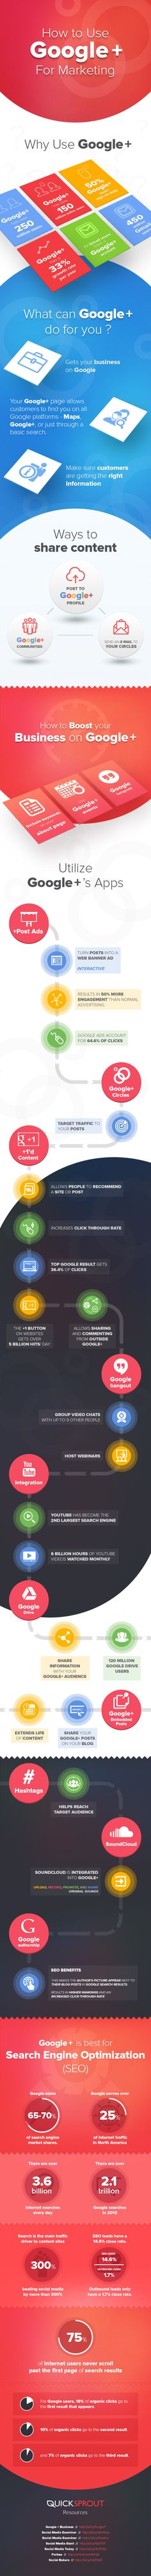 How to Use Google+ for Marketing [Infographic] - ChurchMag